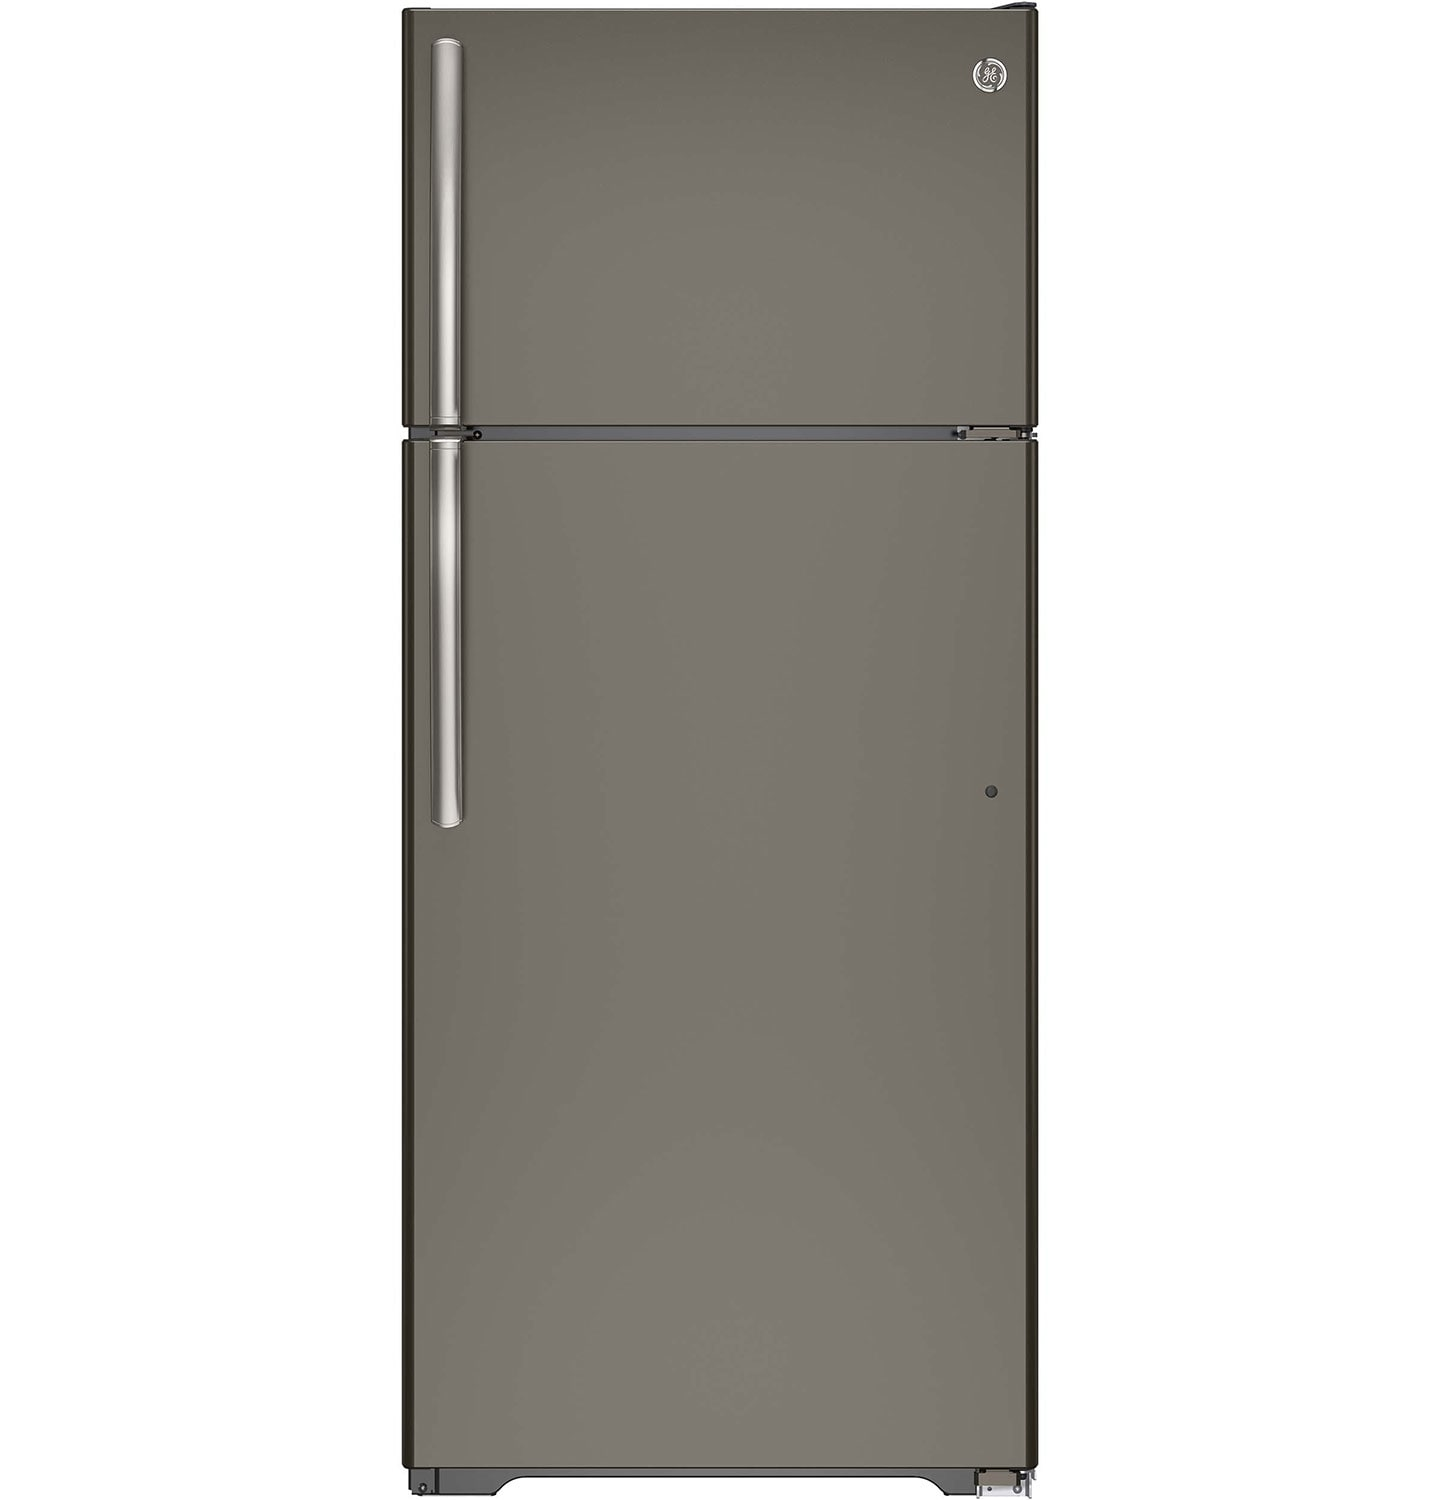 Refrigerators and Freezers - GE 17.5 Cu. Ft. Top-Freezer Refrigerator - Slate